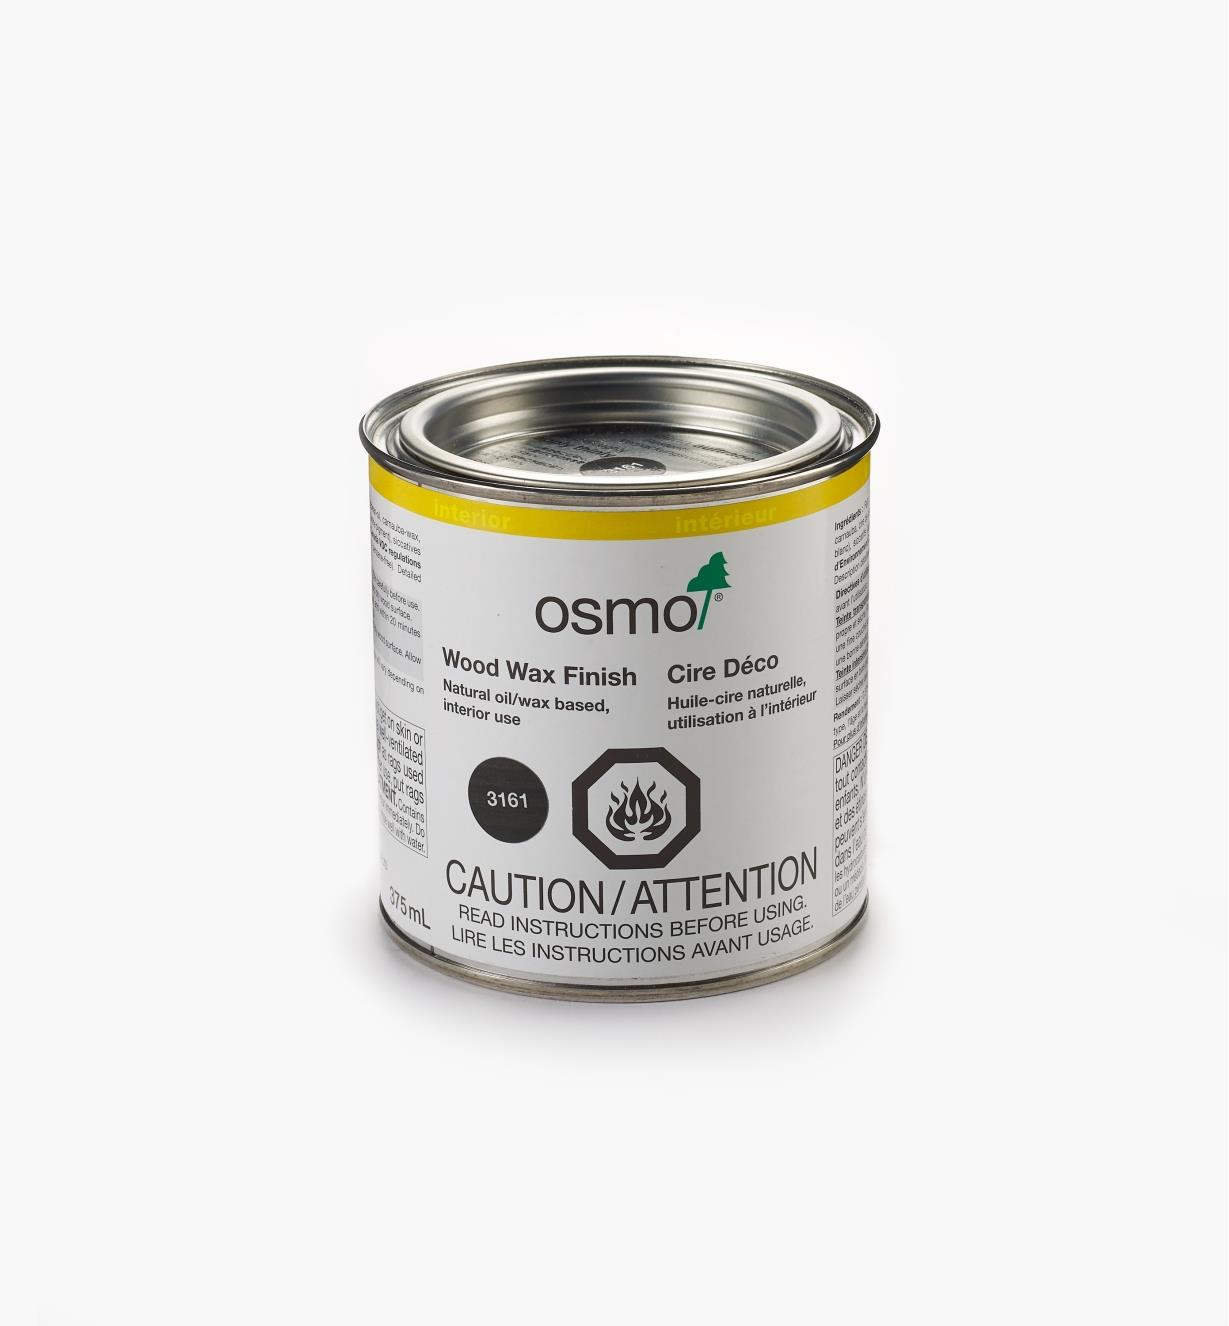 27K2752 - Osmo 3161 Ebony Wood Wax, 375ml (12.5 fl oz)